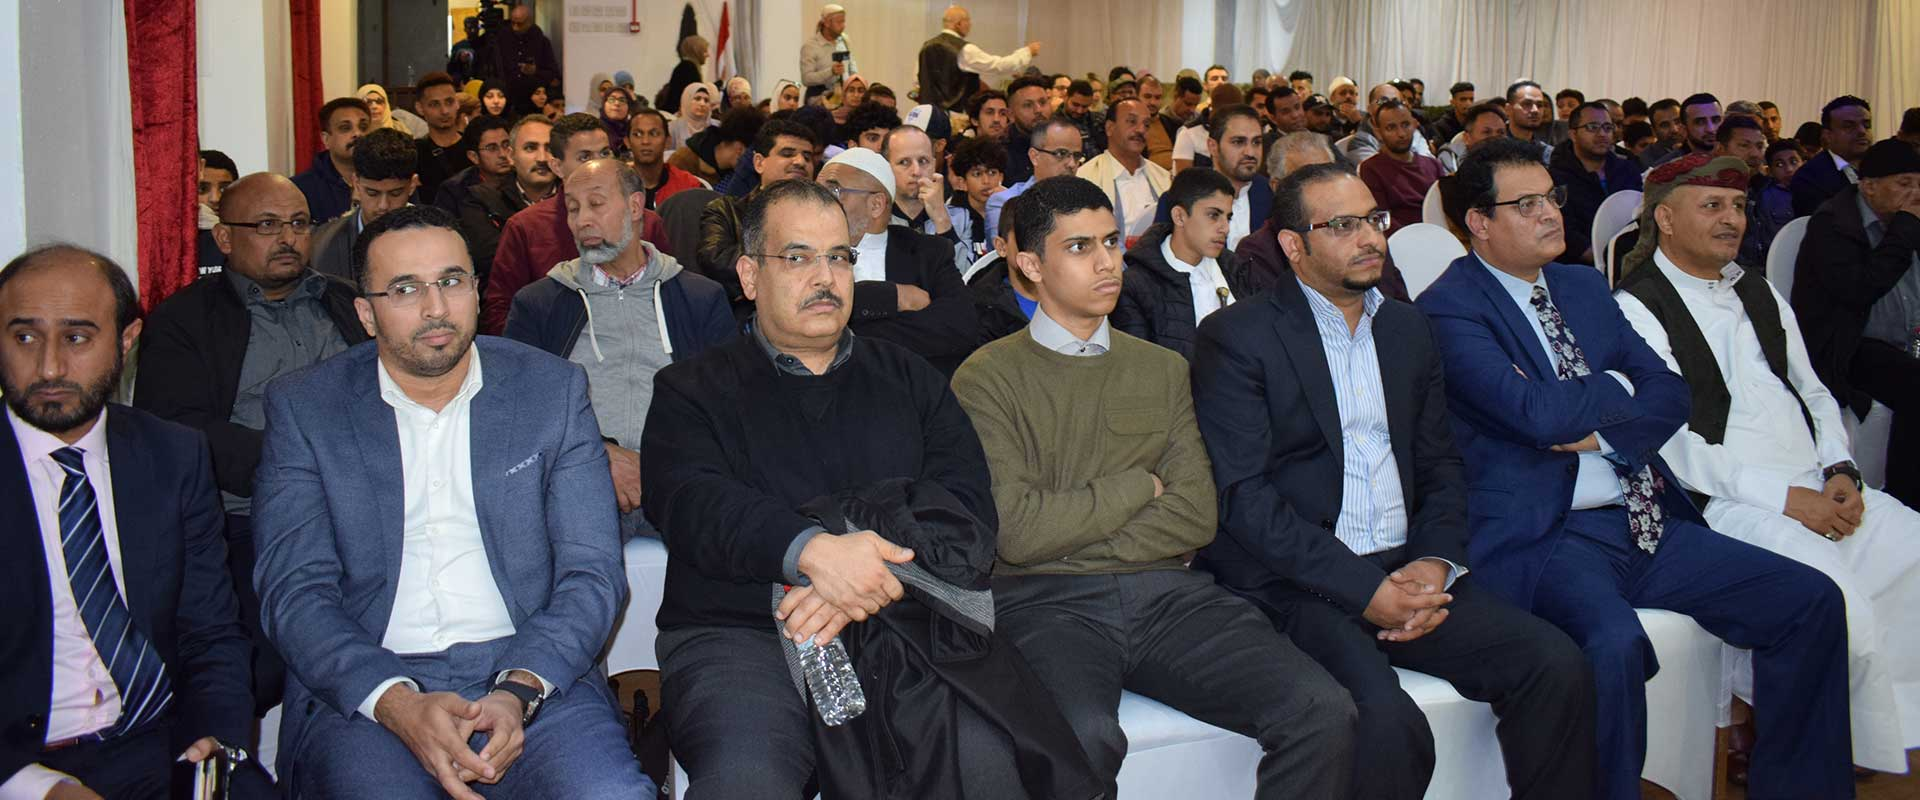 Celebrating with the Yemeni Community in Birmingham